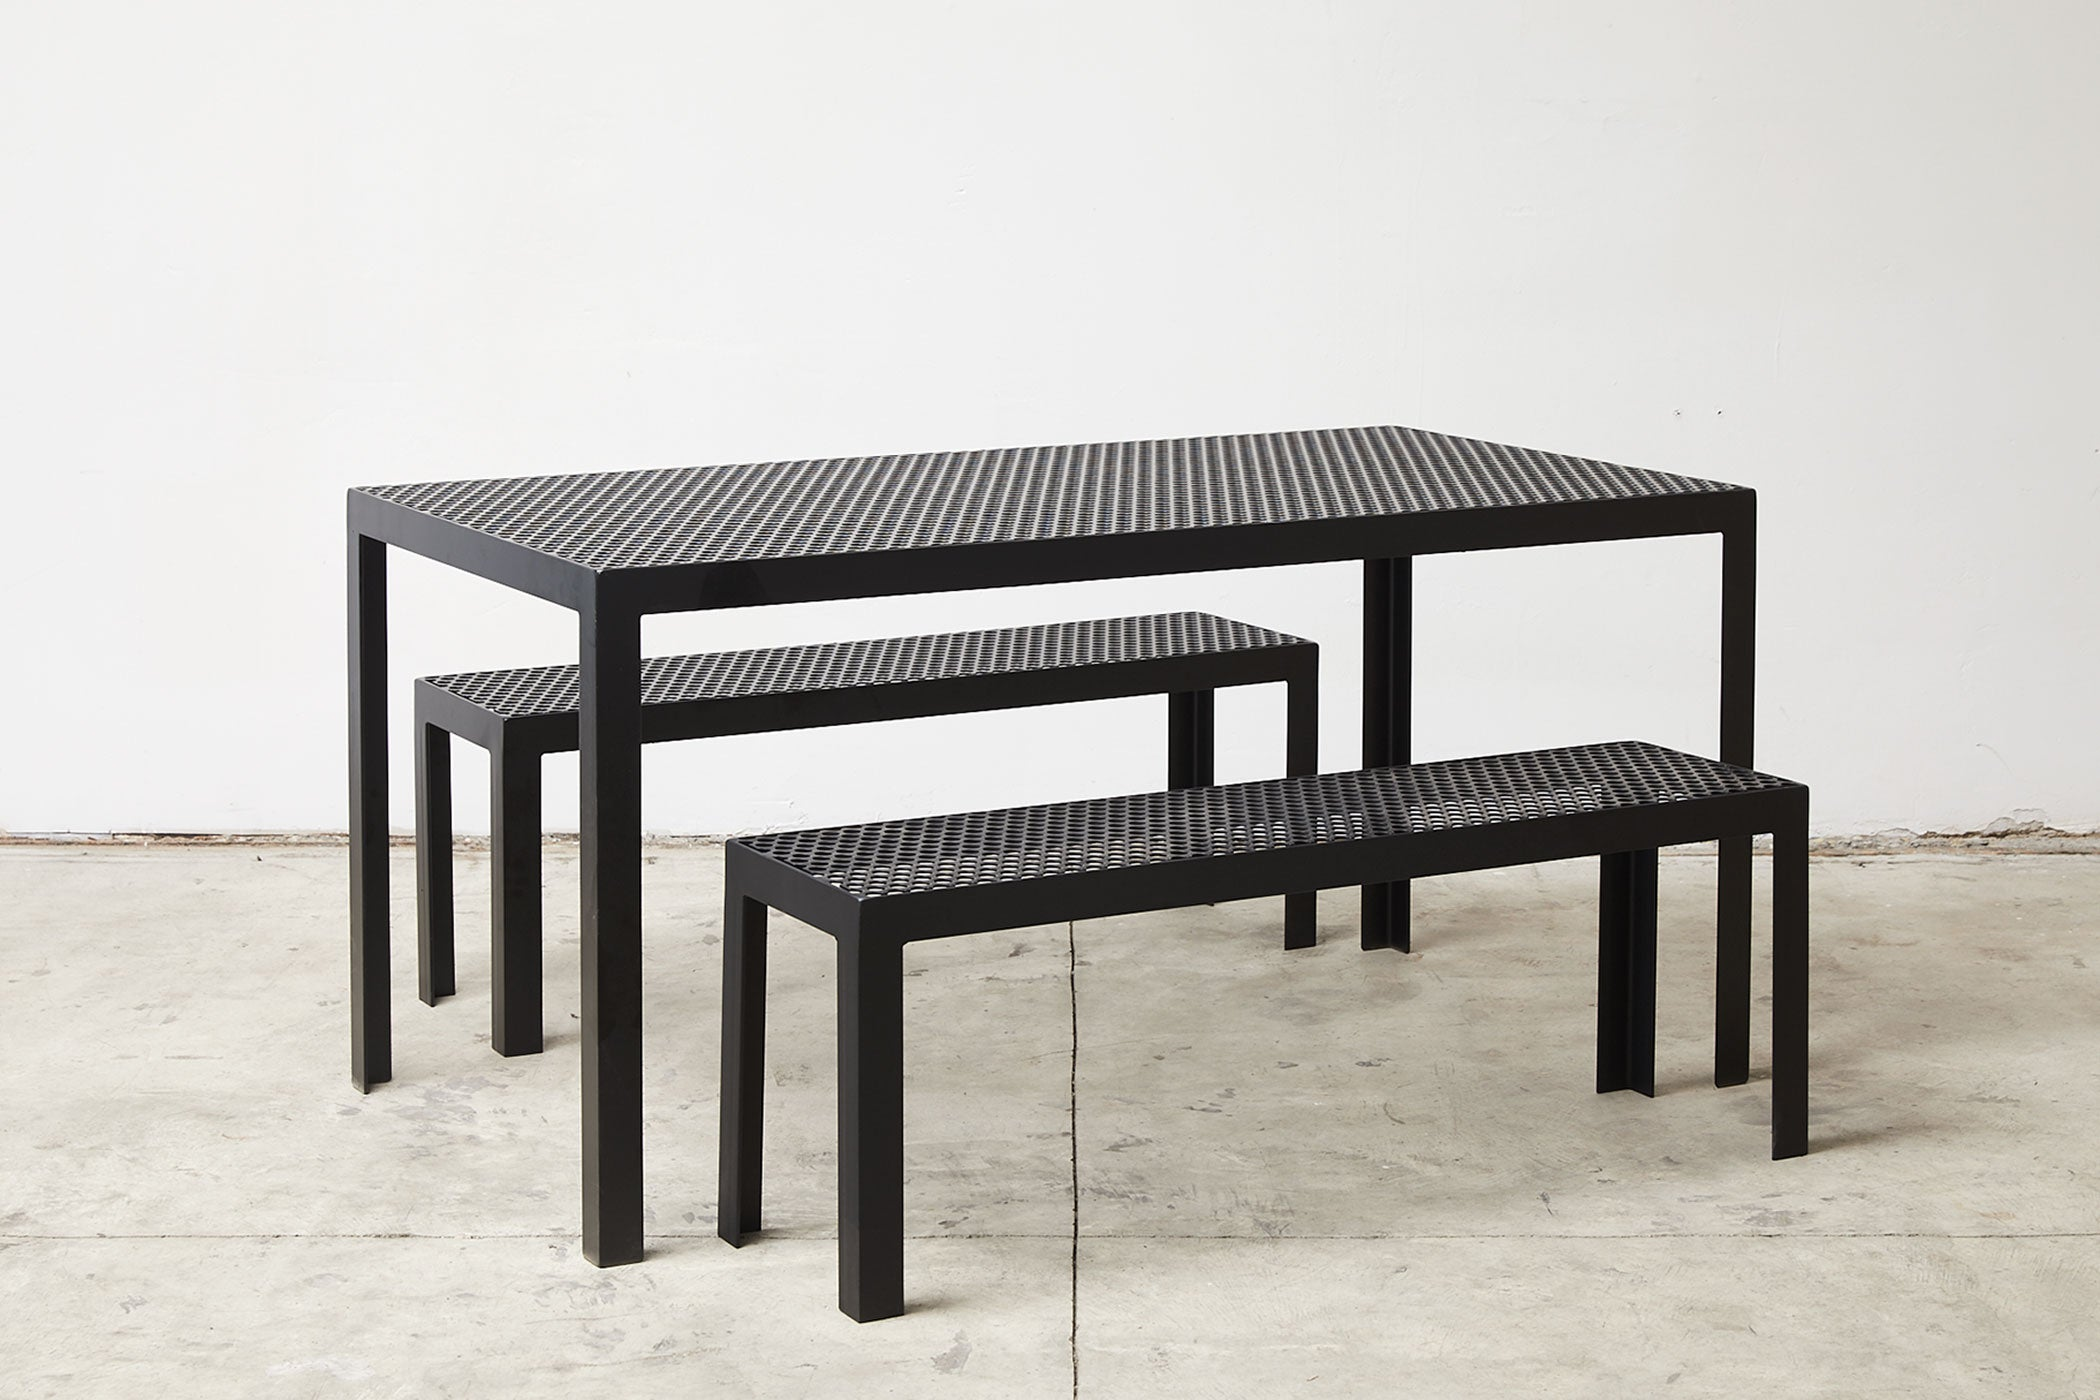 RAD Furniture's Perforated Benches with Perforated Dining Table